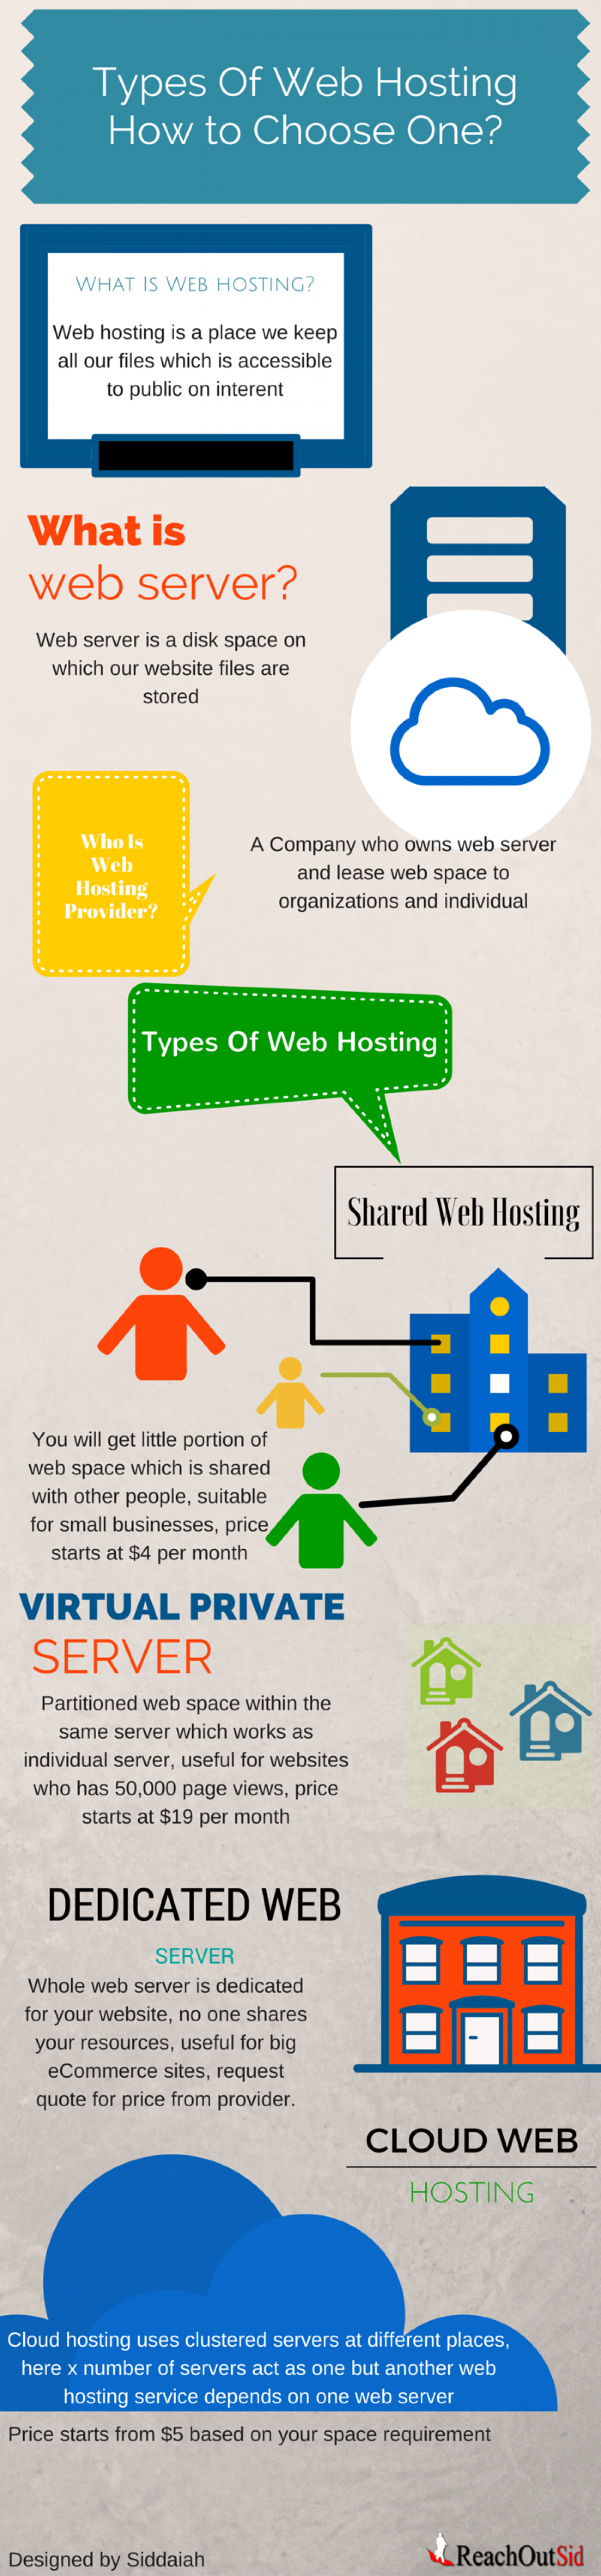 Types of Web Hosting Services Infographic